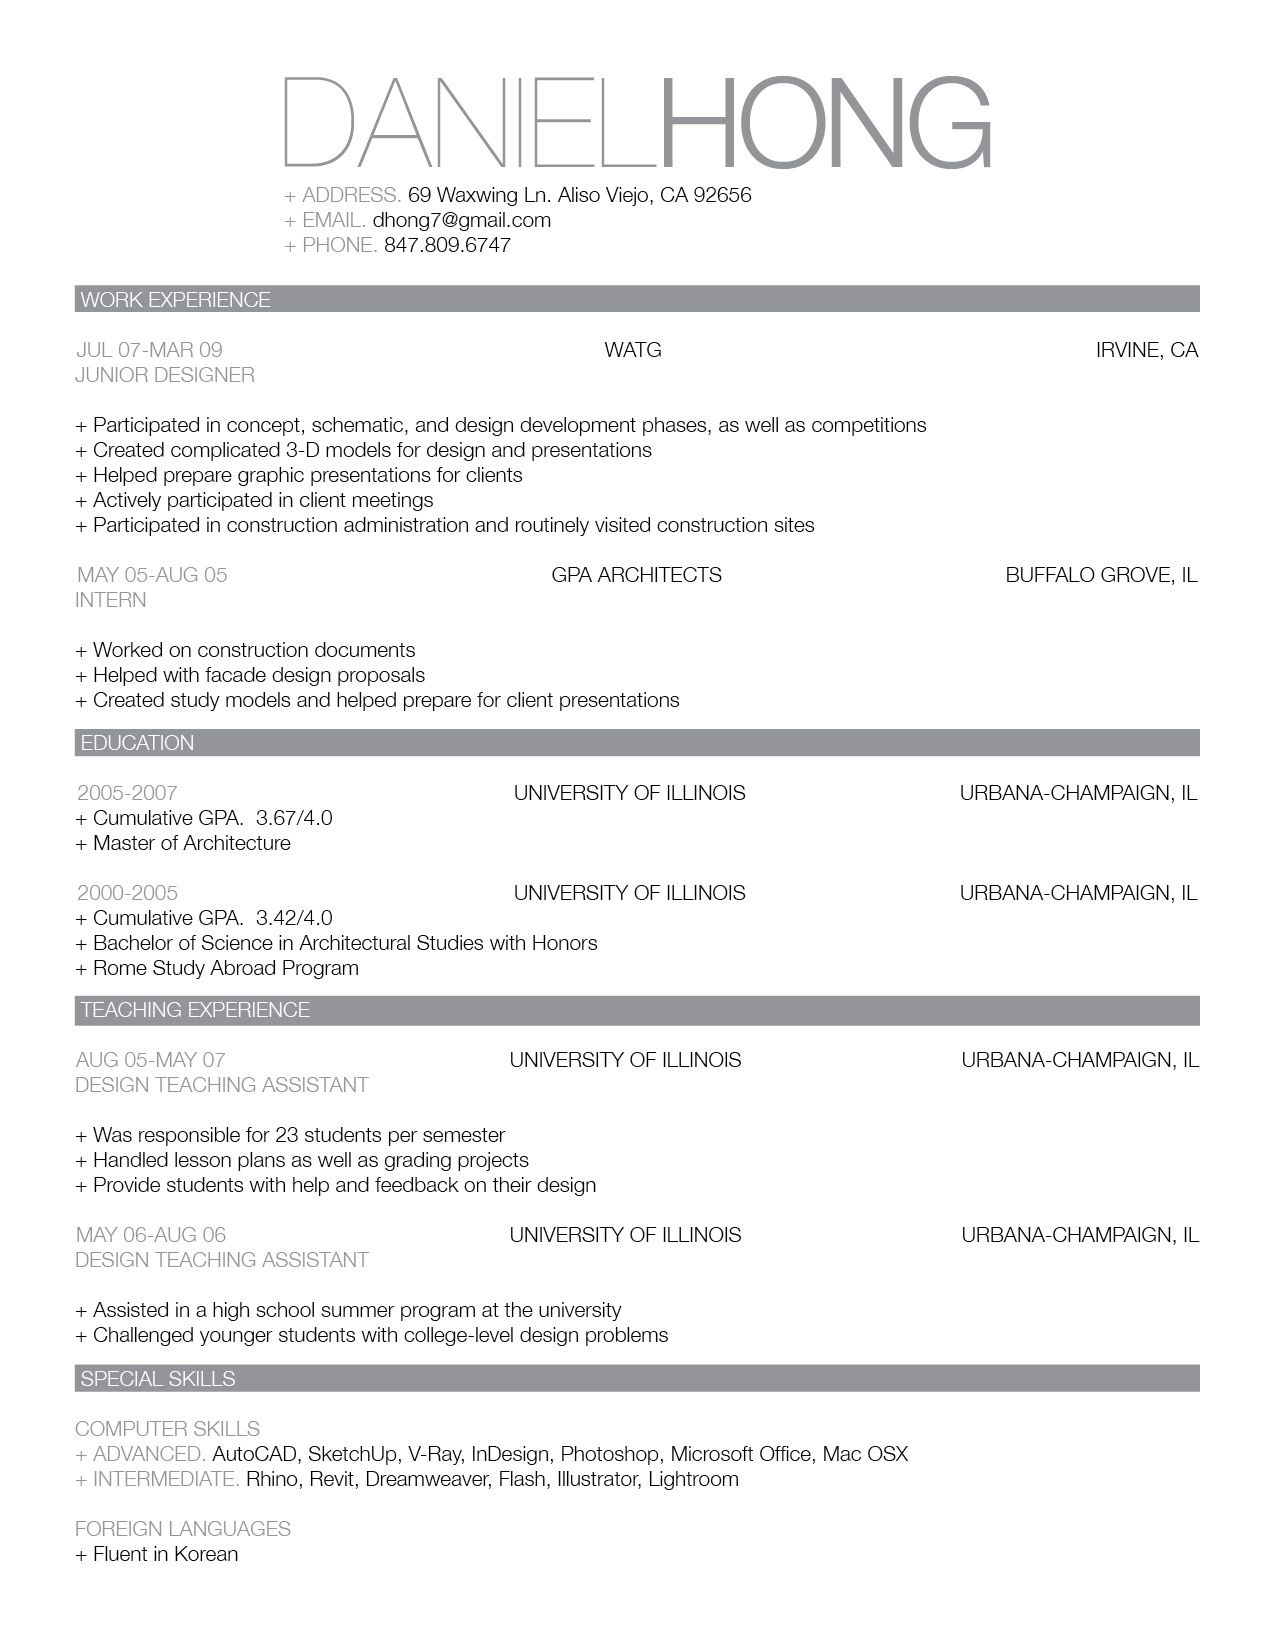 Experience Resume Template Updated Cv And Work Sample  Professional Resume Sample Resume